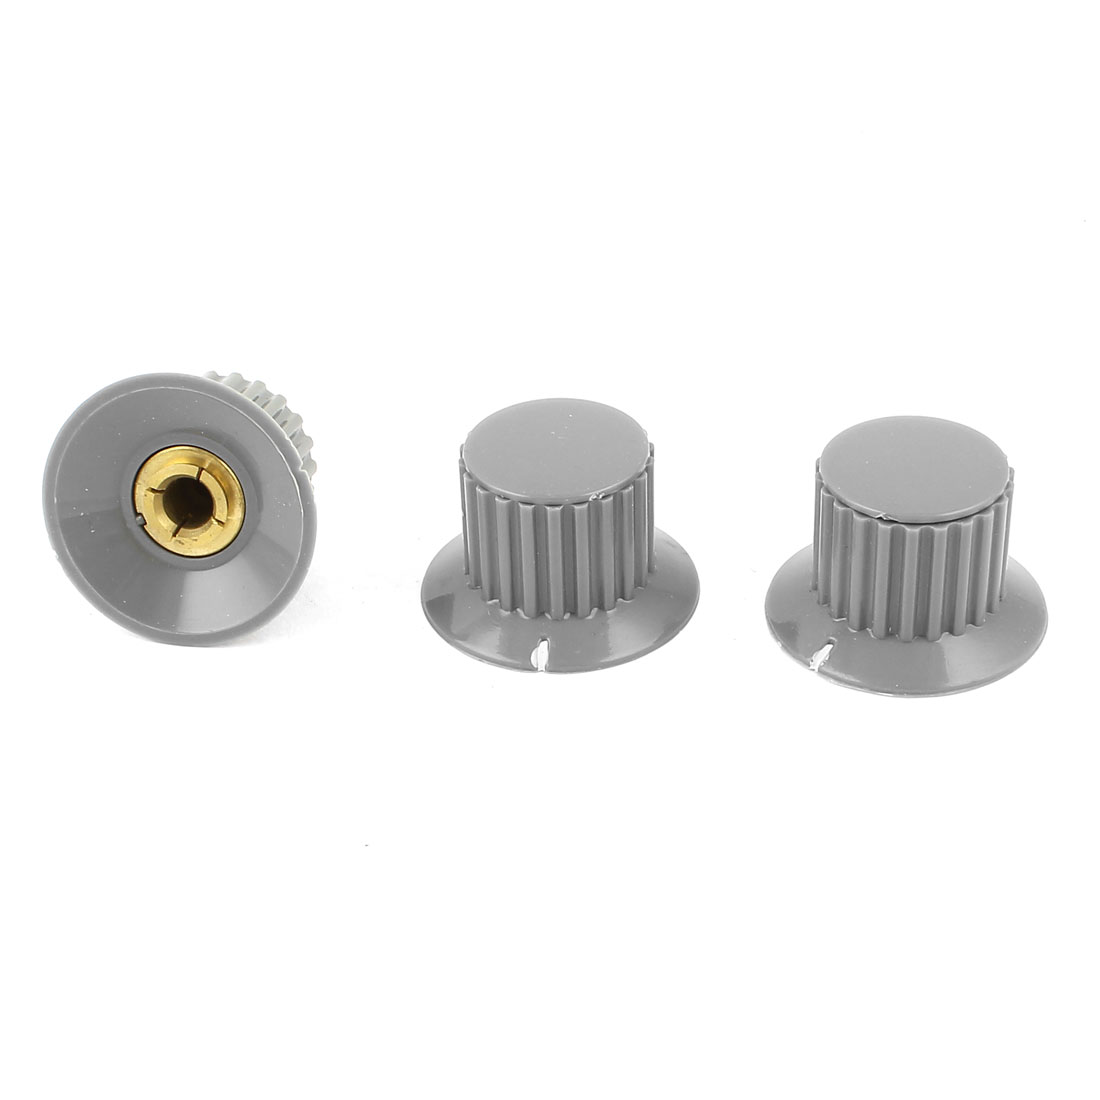 "3Pcs Gray Ribbed Grip 1/4"" Split Shaft Potentiometer Control Knobs"